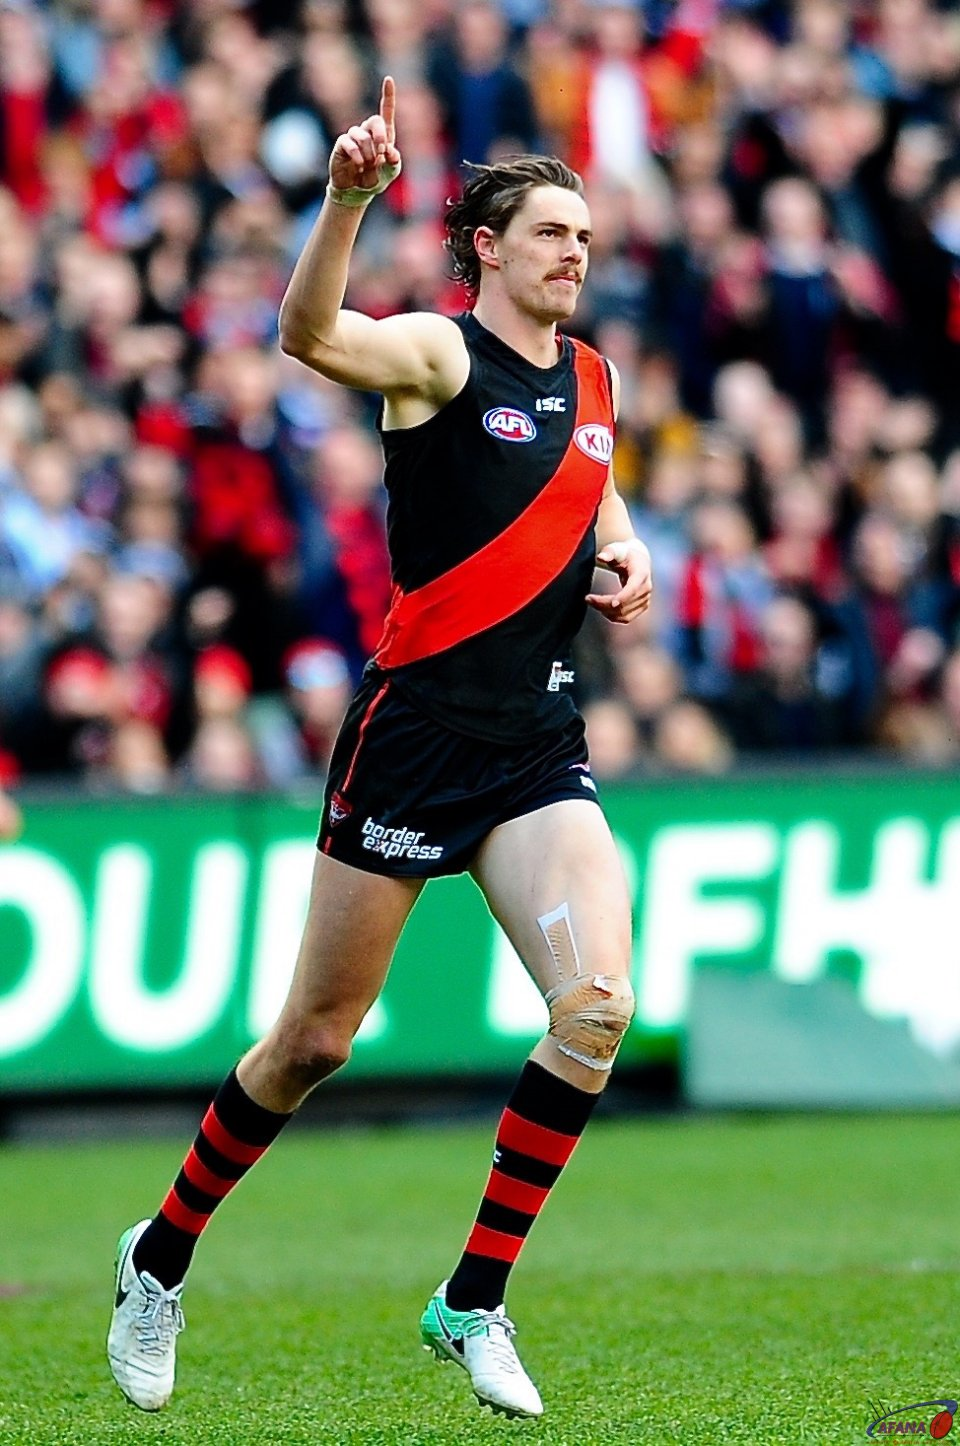 Daniher leads the Coleman with this goal